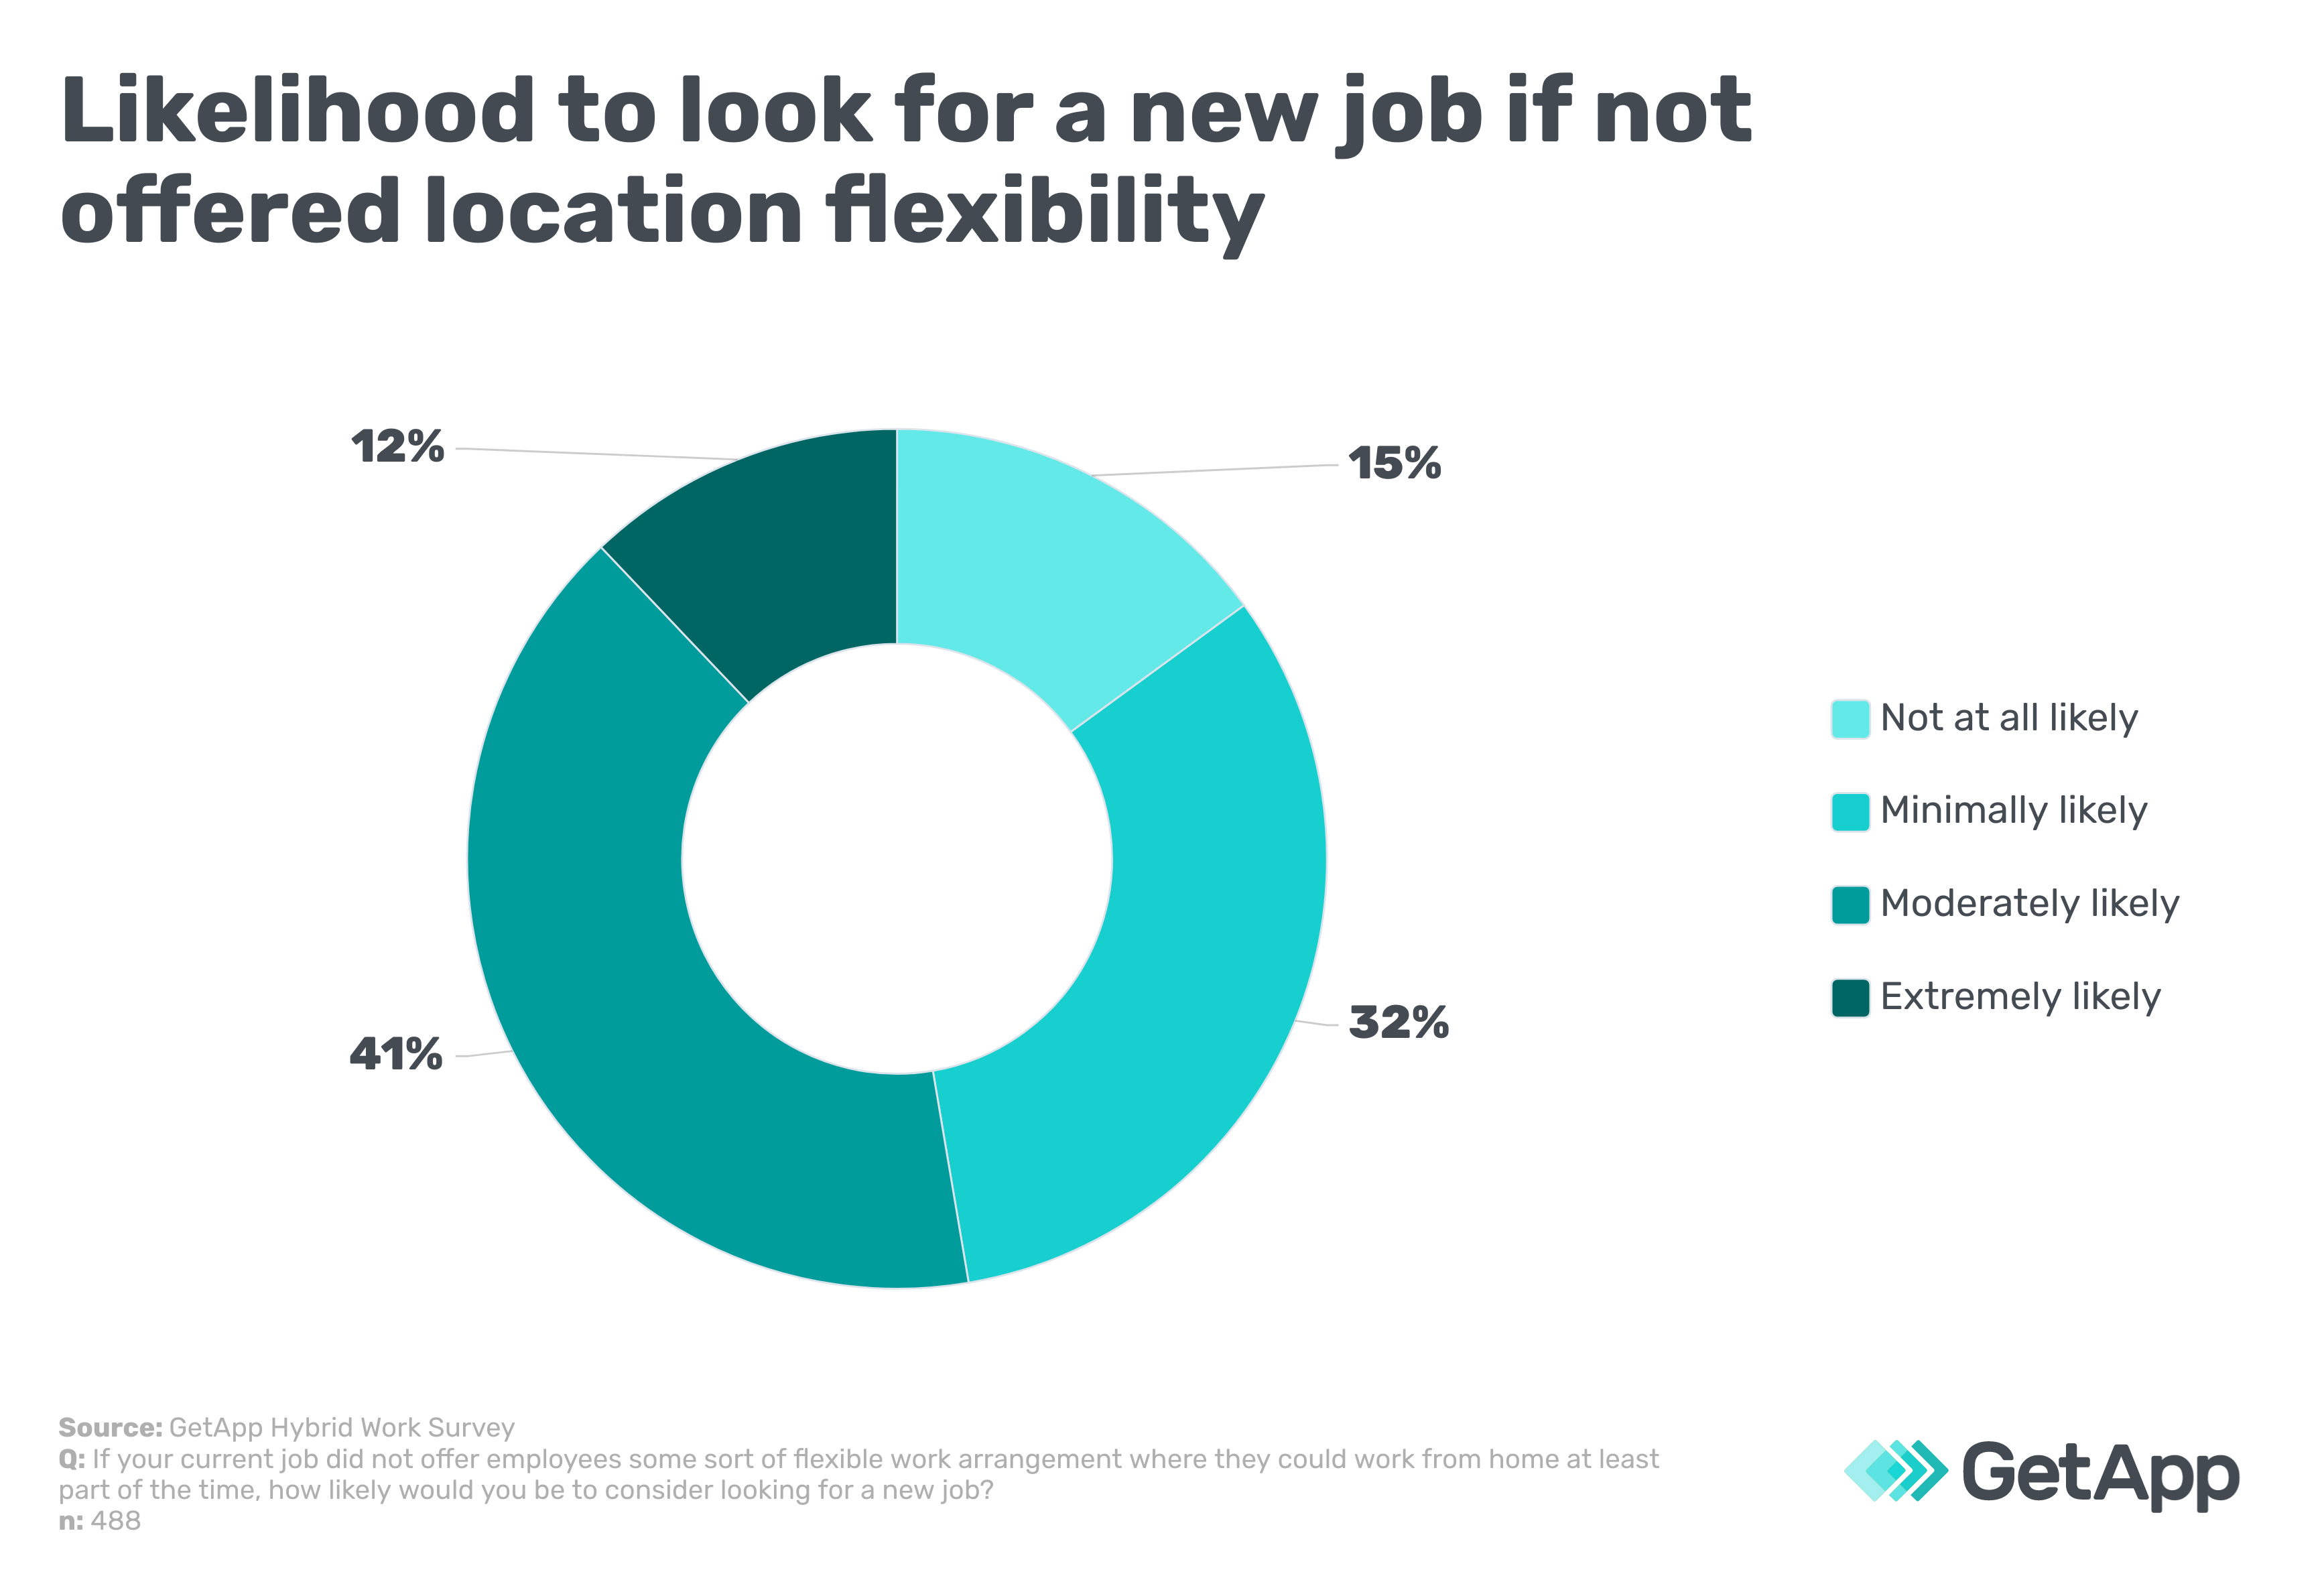 Likelihood to look for a new job if not offered location flexibility